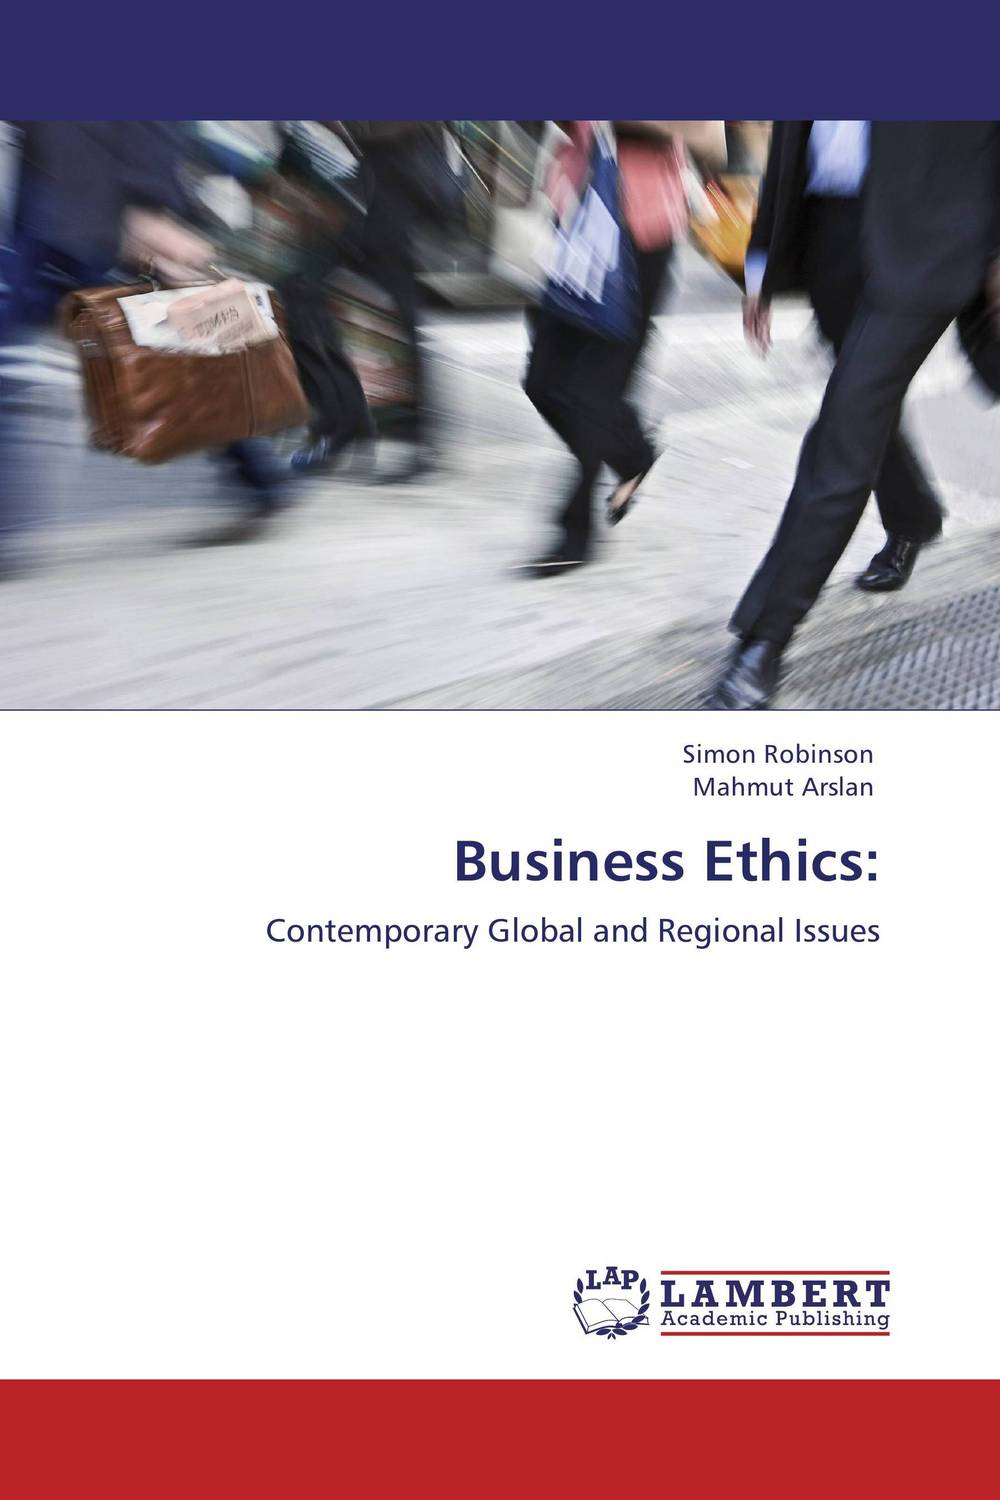 Business Ethics: the application of global ethics to solve local improprieties